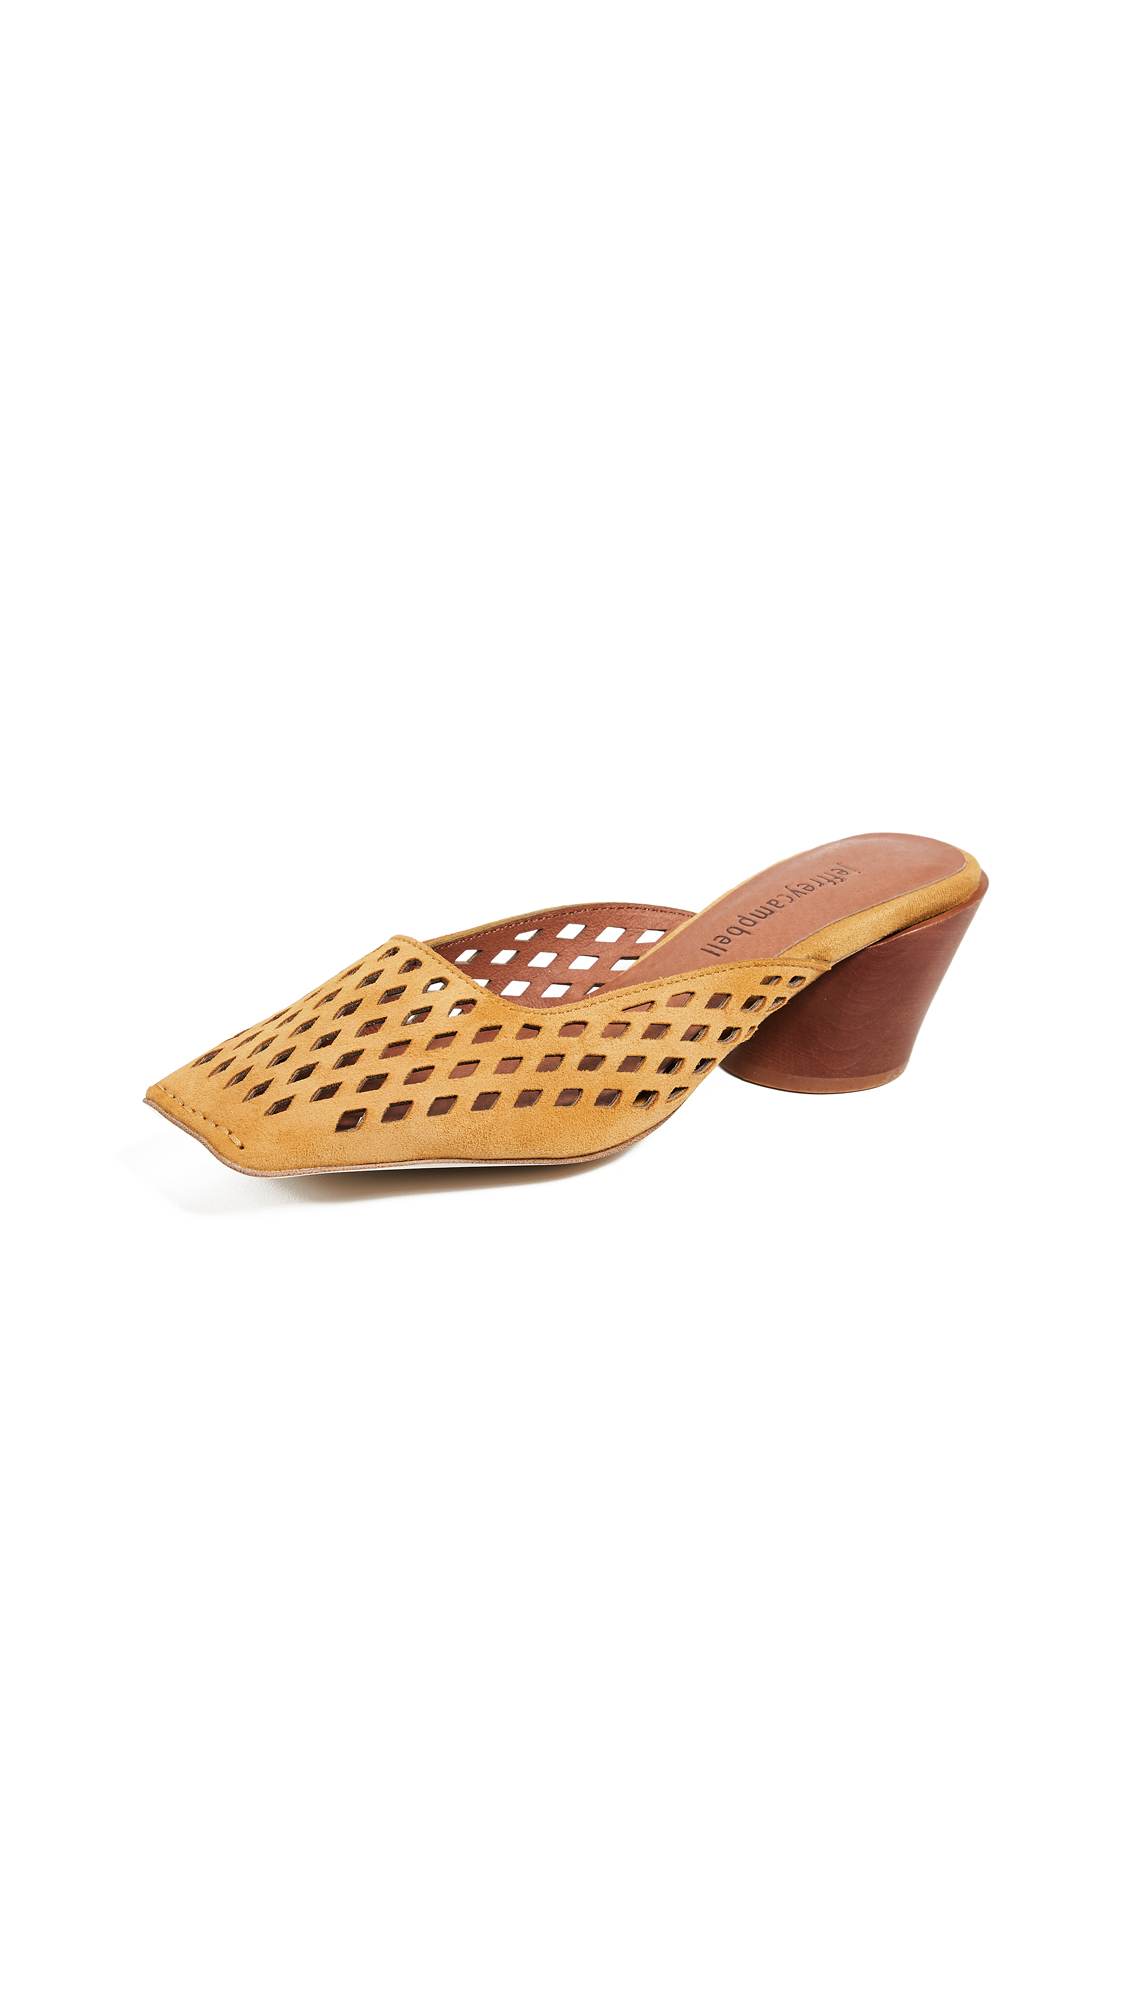 Jeffrey Campbell Lakme Perforated Pumps - Mustard